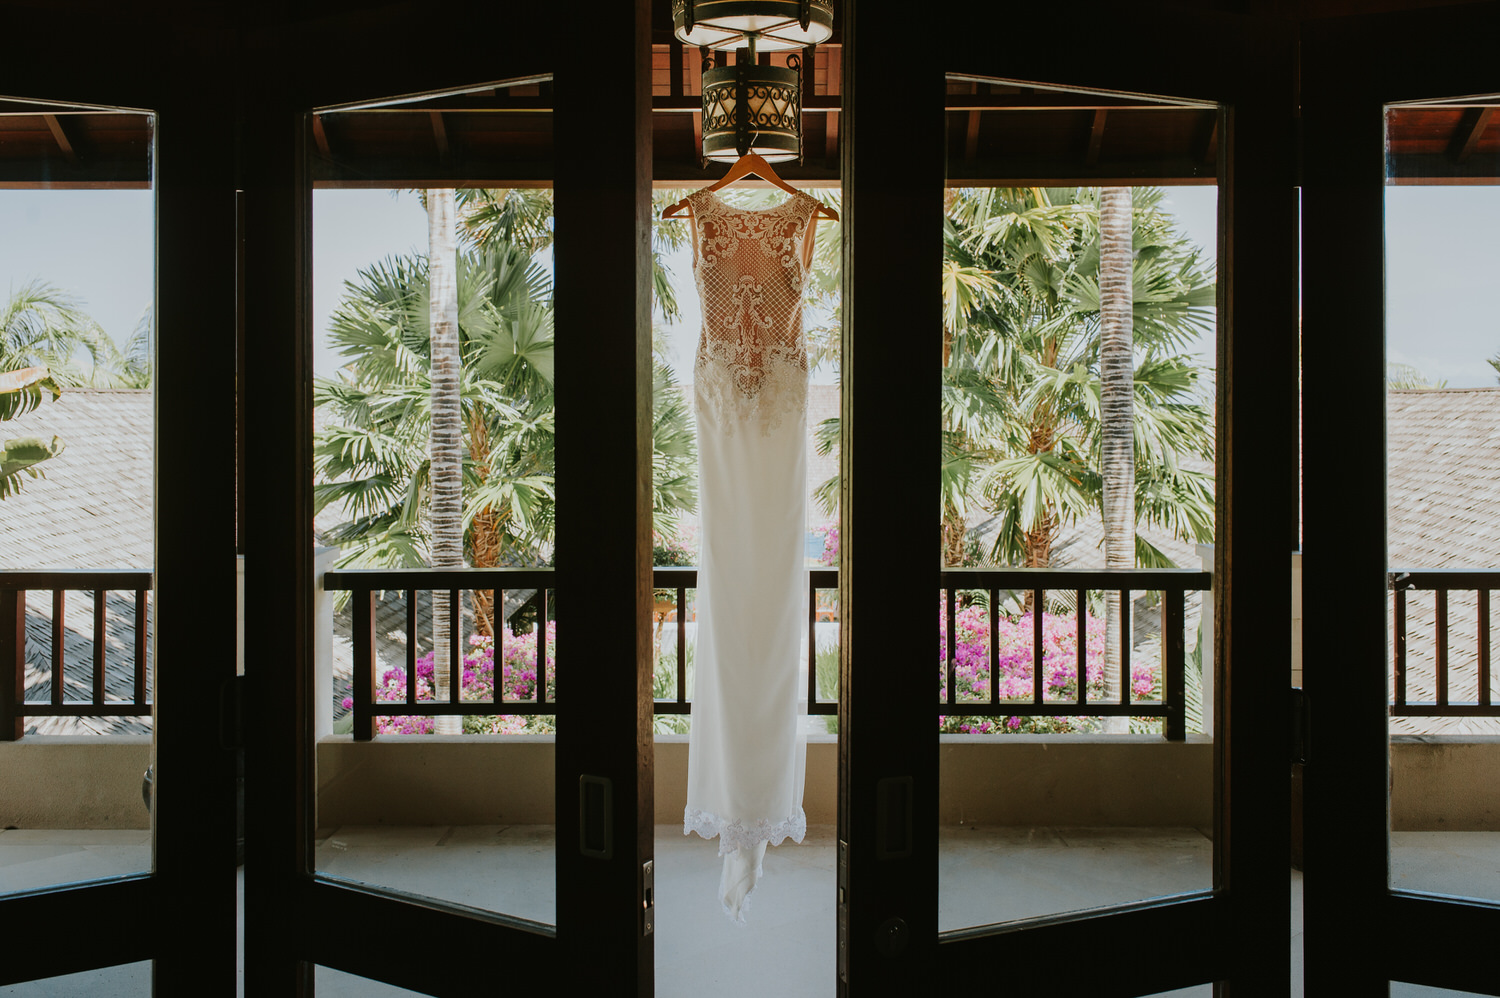 bali wedding destination - the ungasan wedding - bali wedding photographer - diktatphotography - aimee + blake wedding - 11